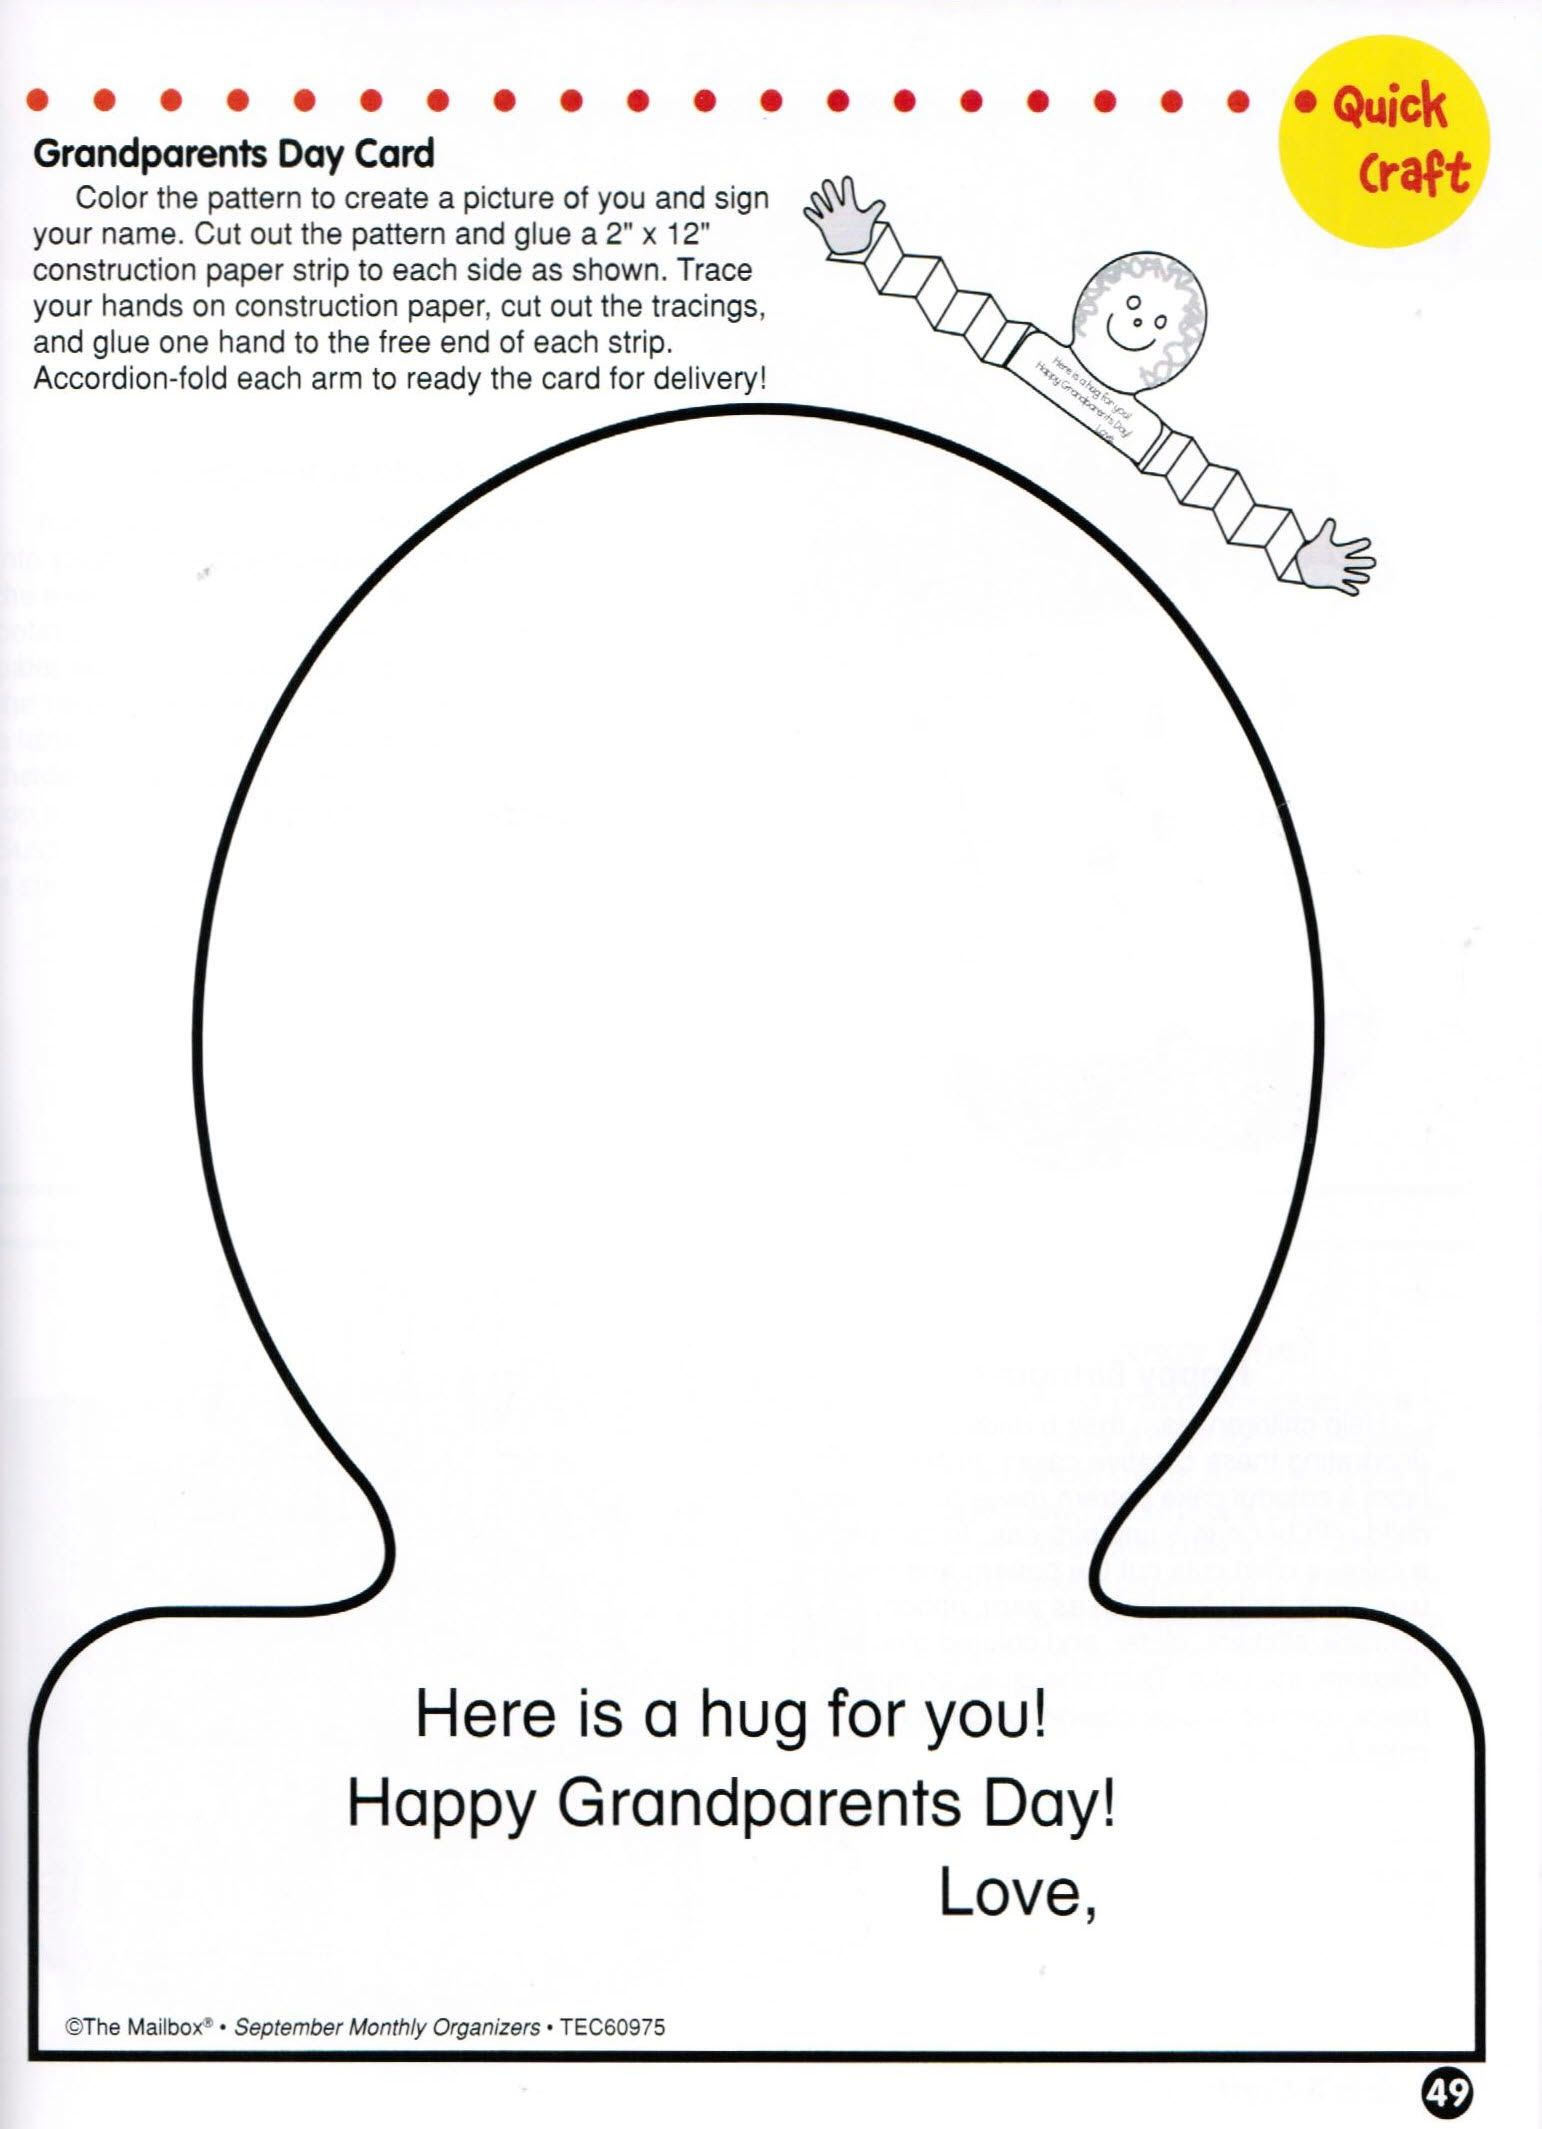 grandparents day card compliments of the organize now  grandparents day card compliments of the organize now series of teacher resource books available